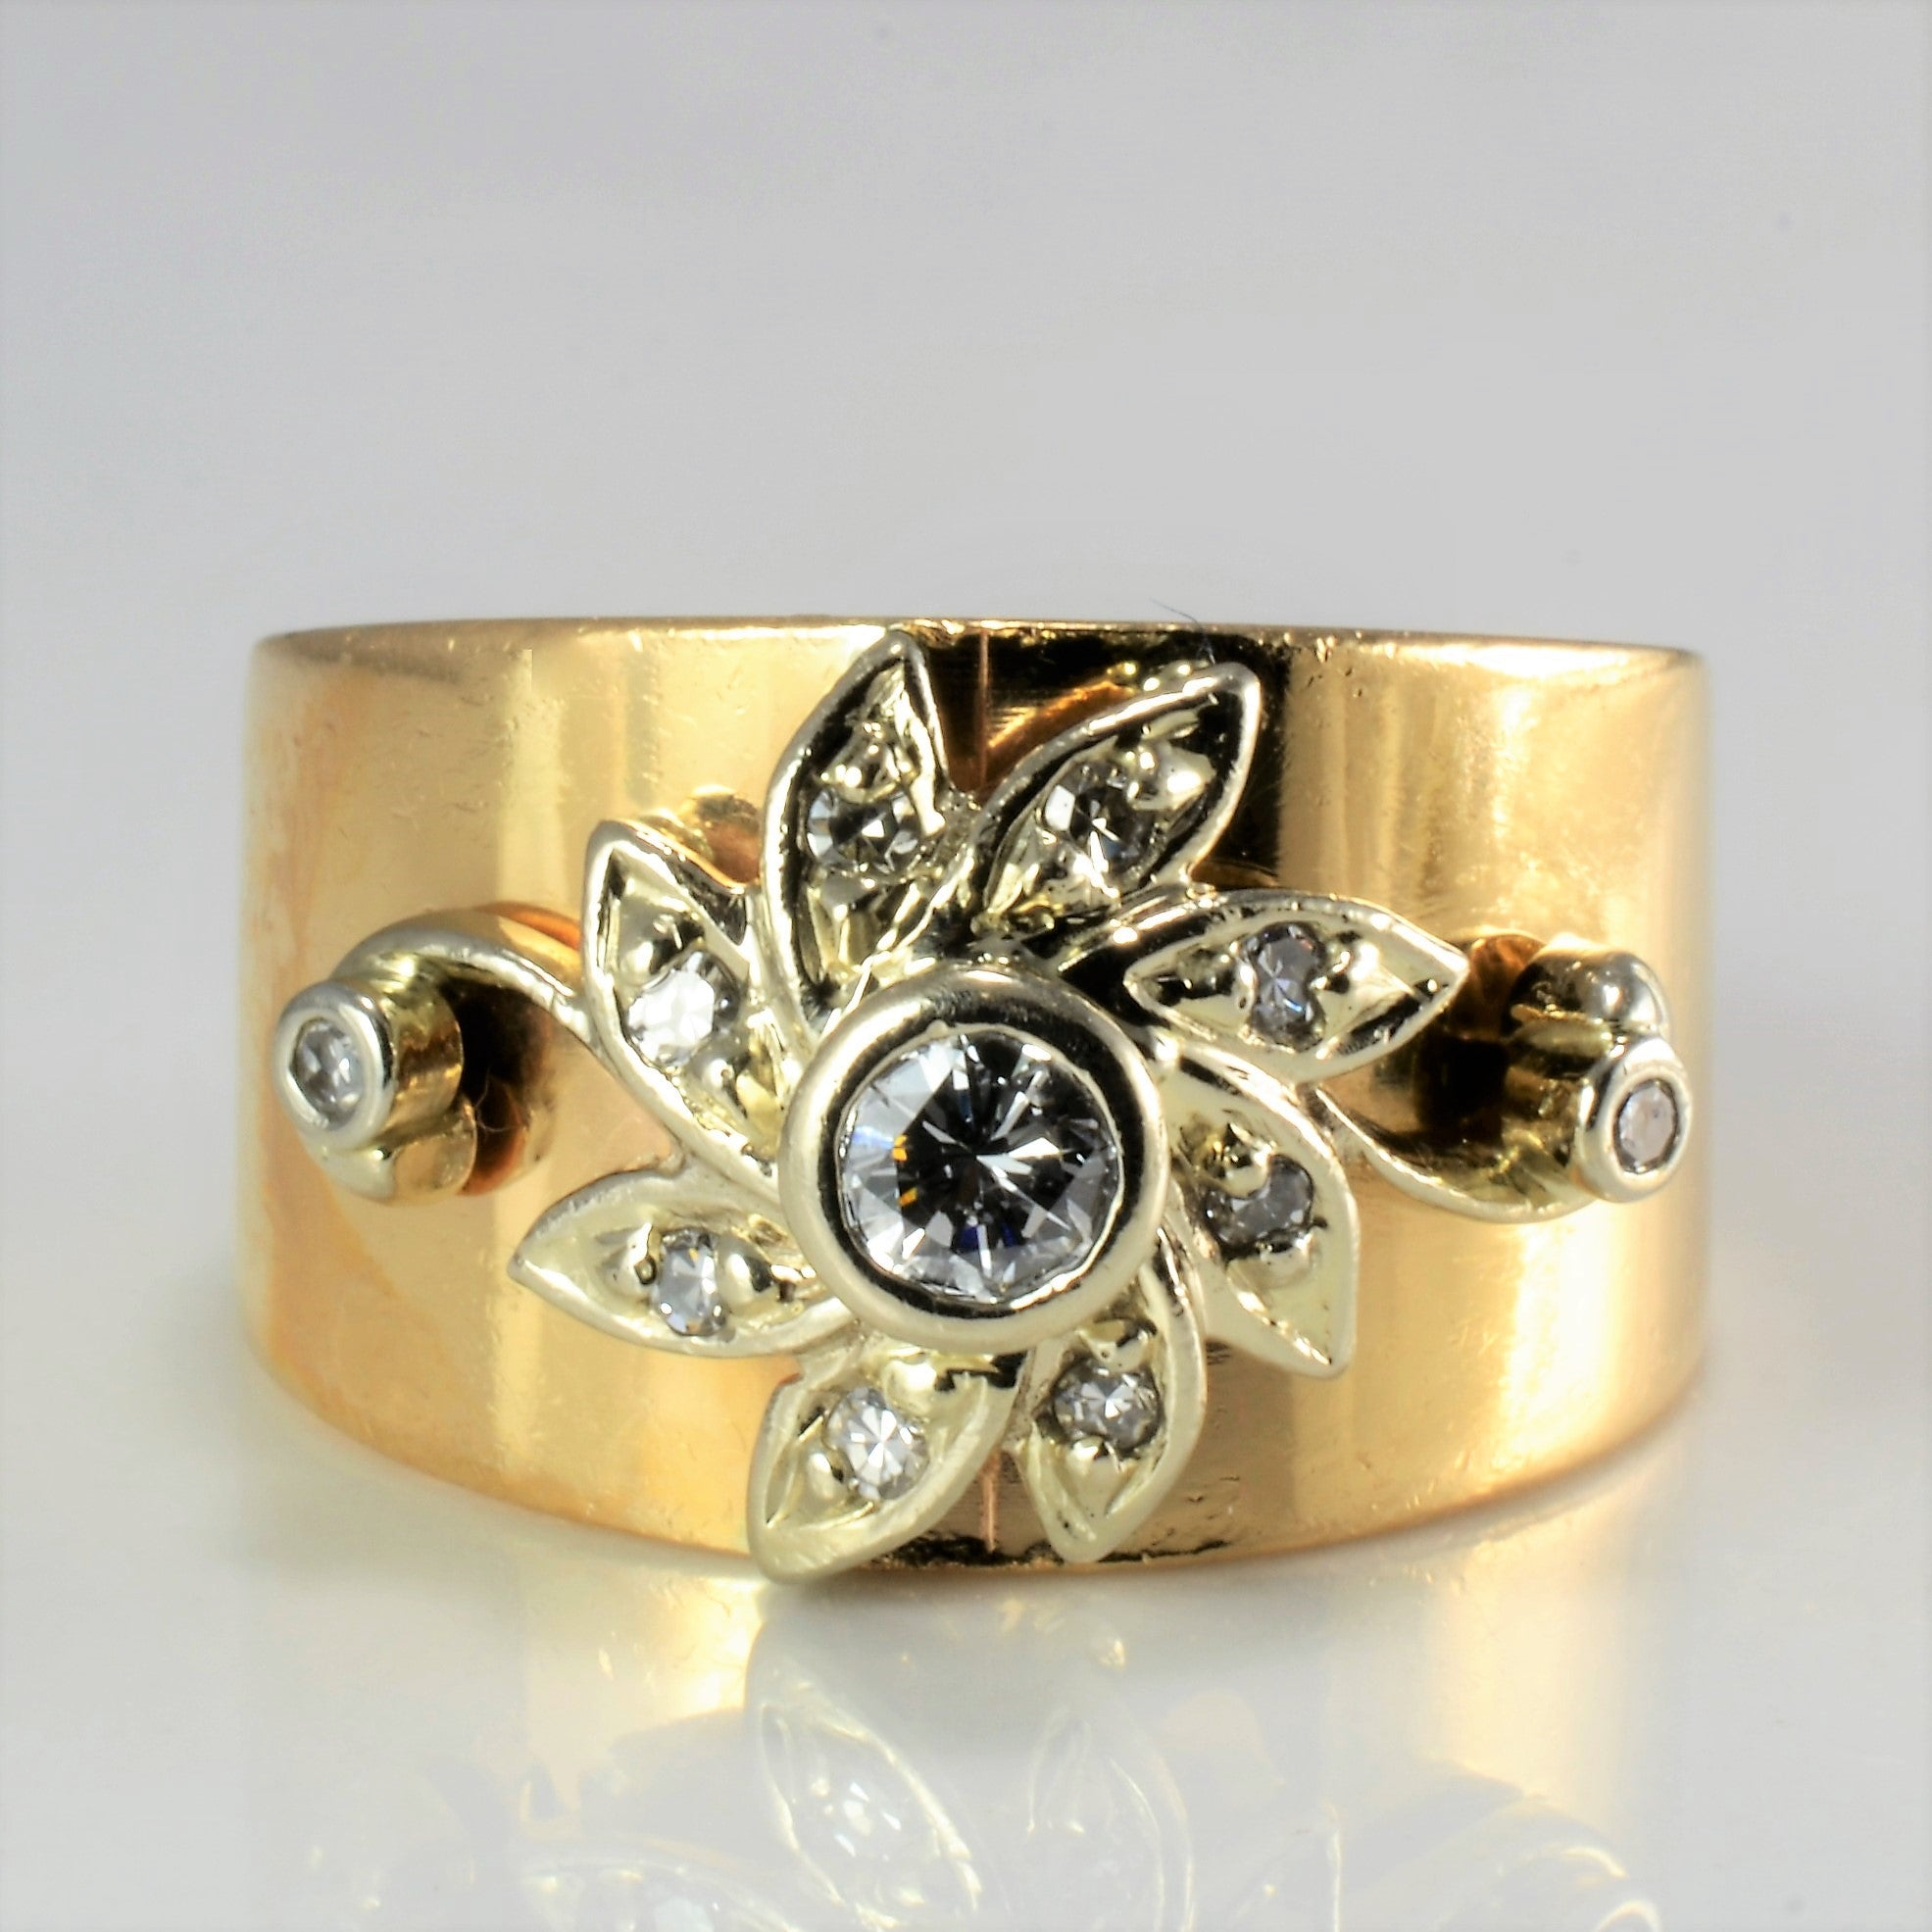 Vintage Floral Inspire Diamond Wide Ring | 0.27 ctw, SZ 7.5 |